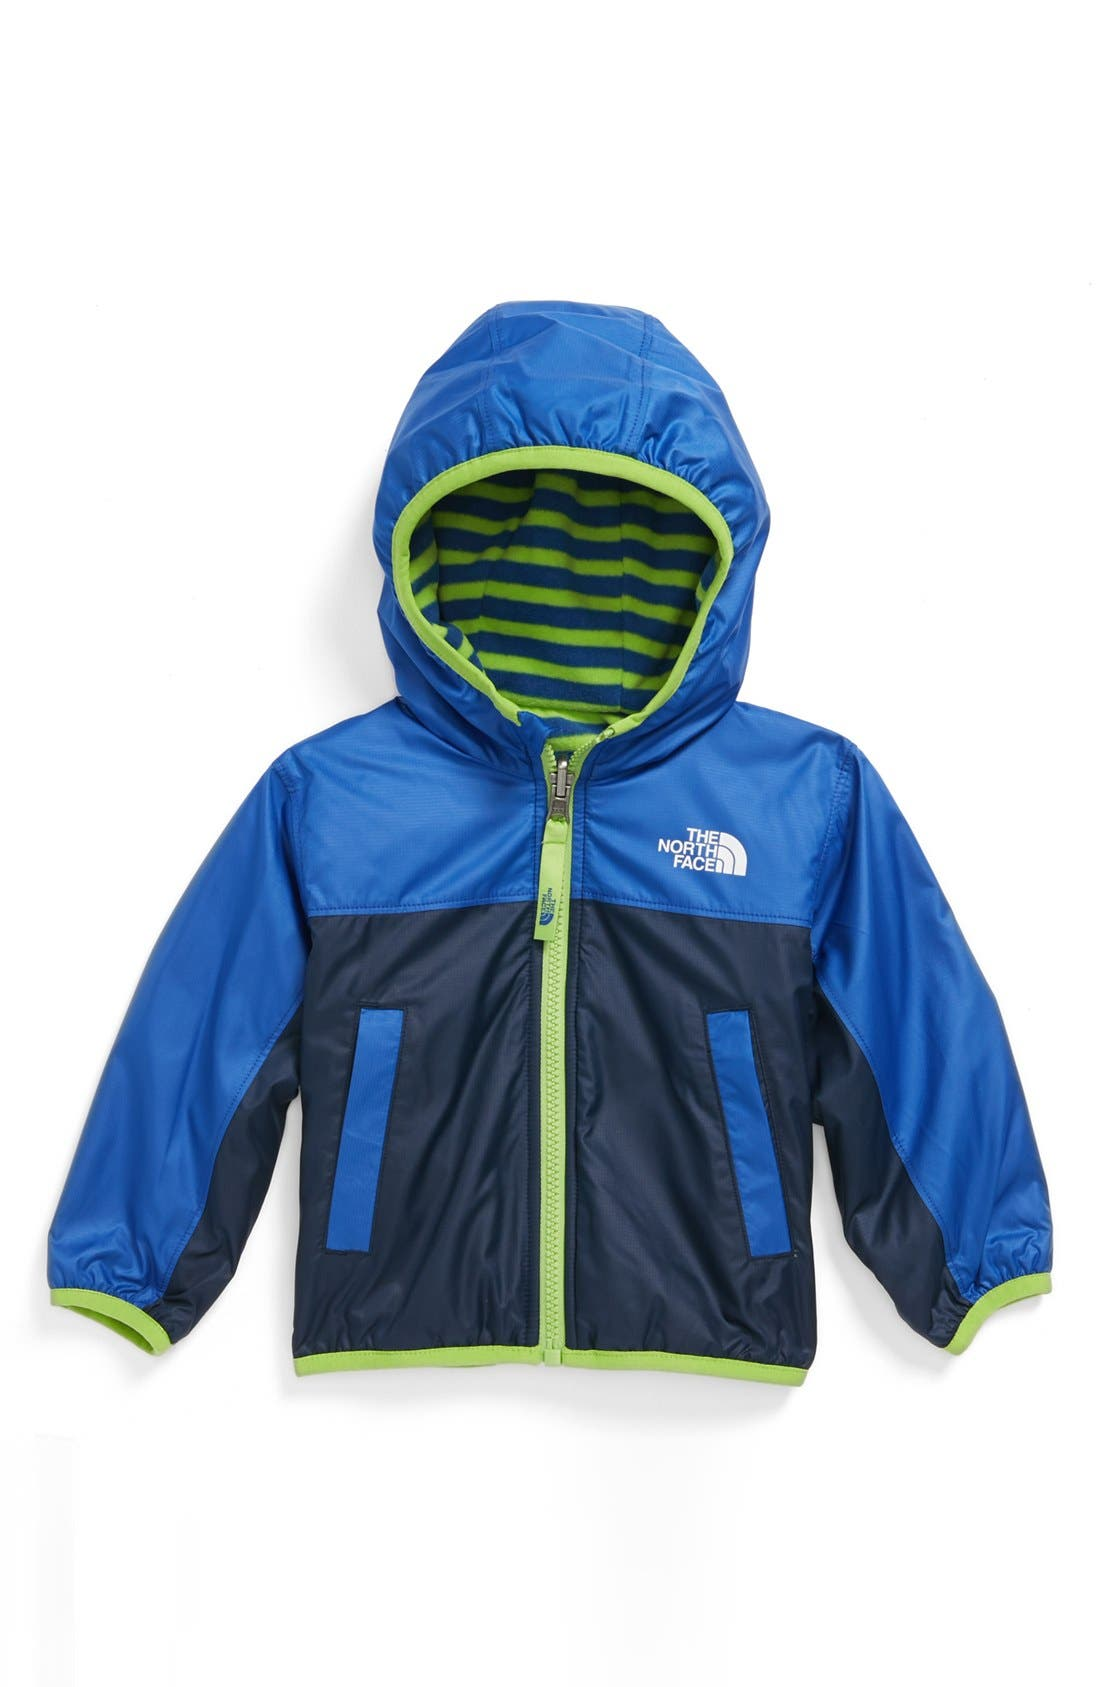 Main Image - The North Face 'Scout' Reversible Wind Jacket (Baby Boys)